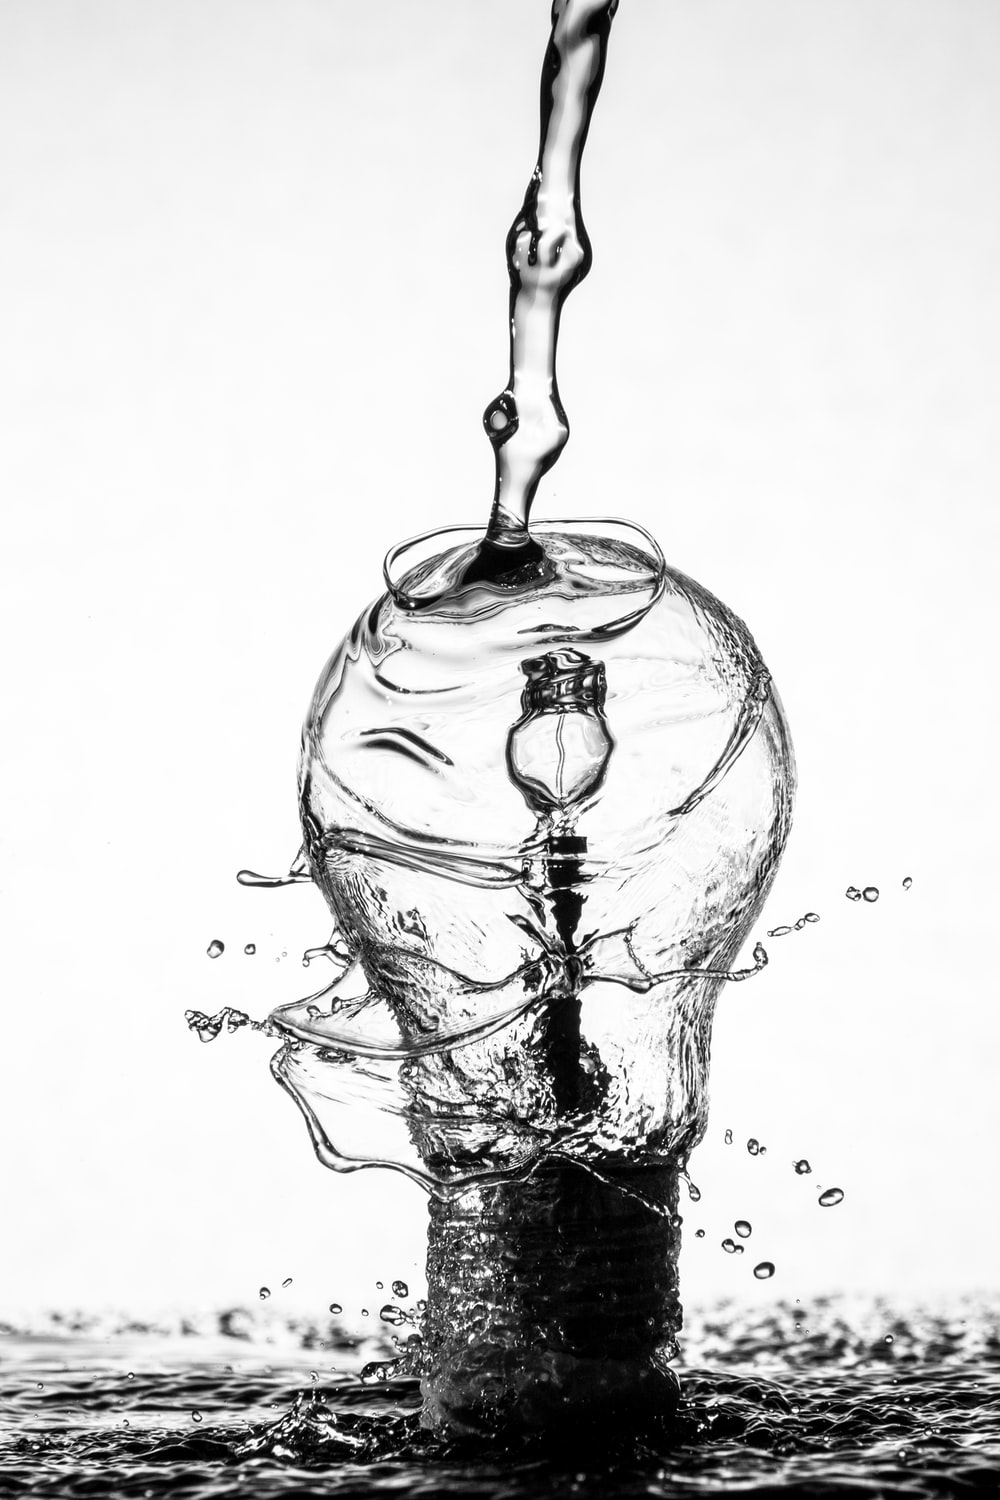 Water splashing against a lightbulb